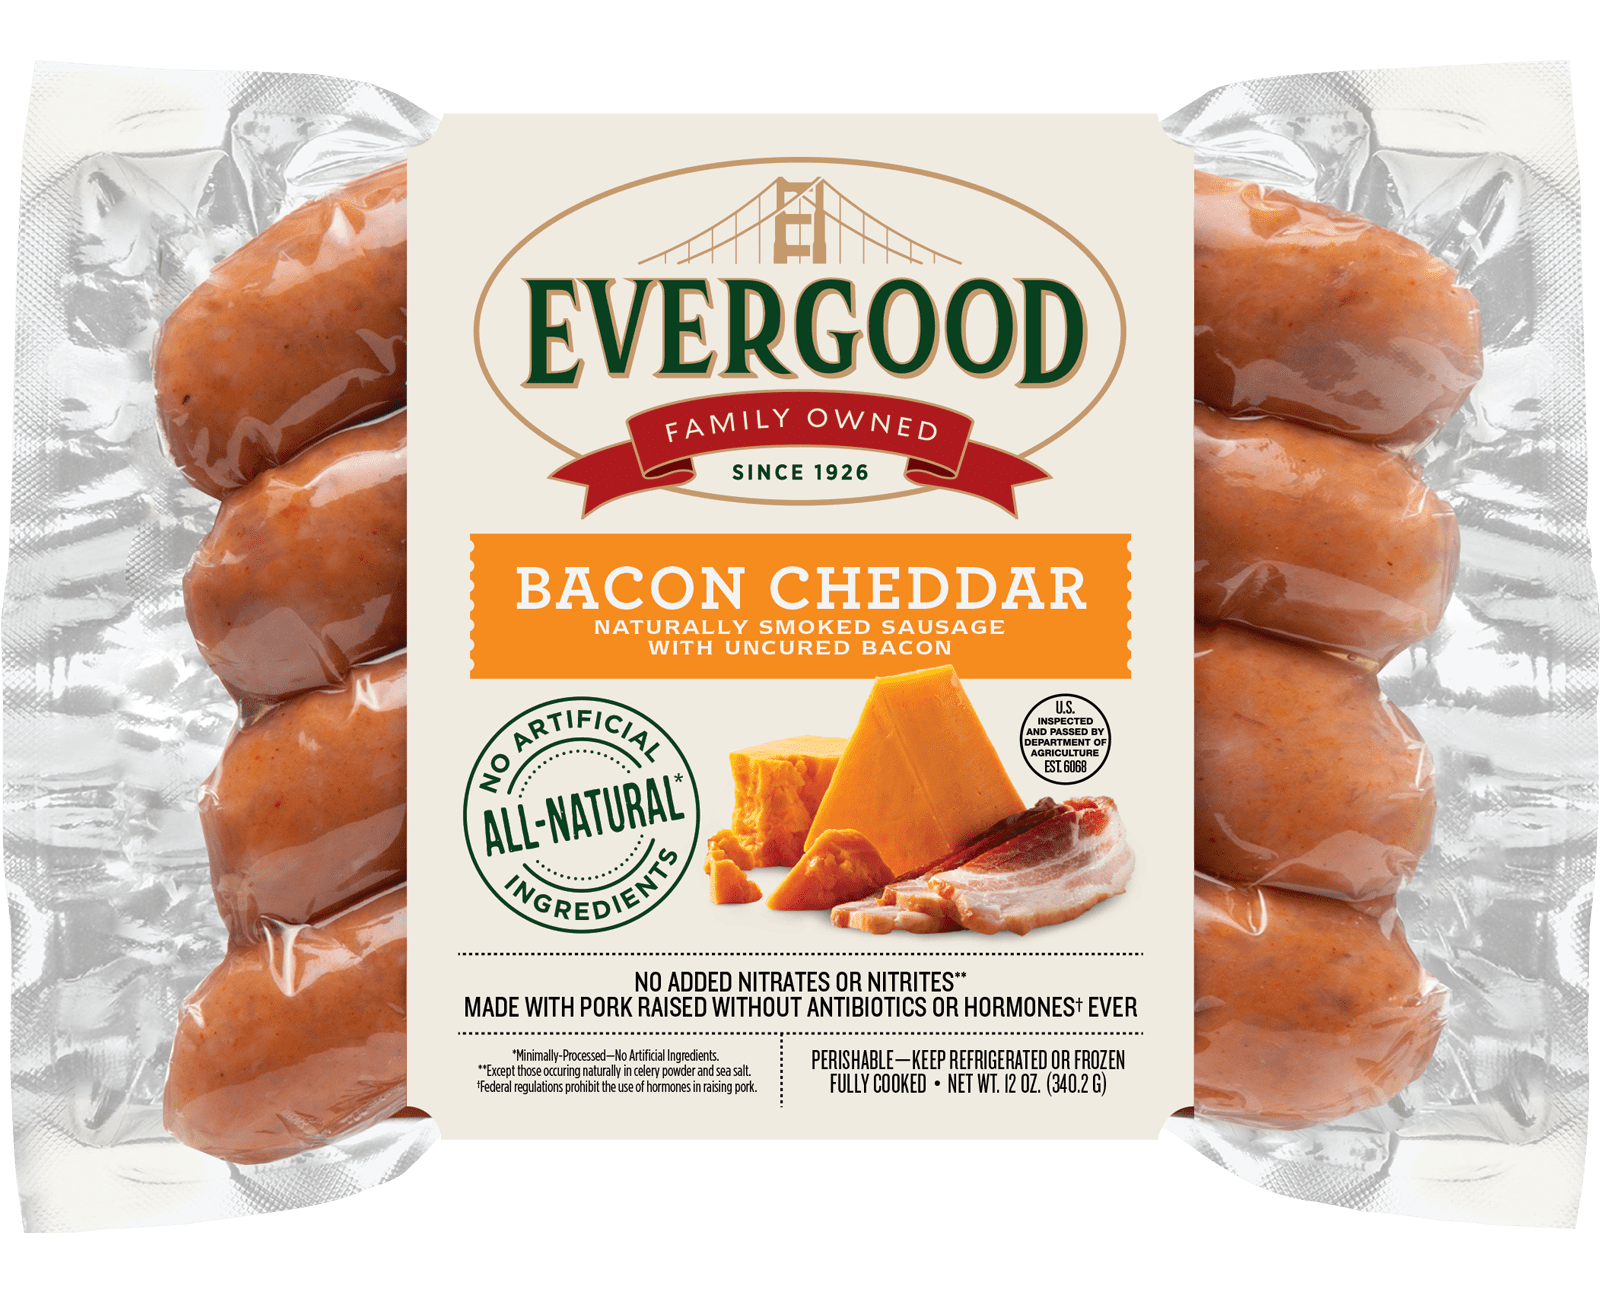 Product Photo: All-Natural Bacon Cheddar Sausage